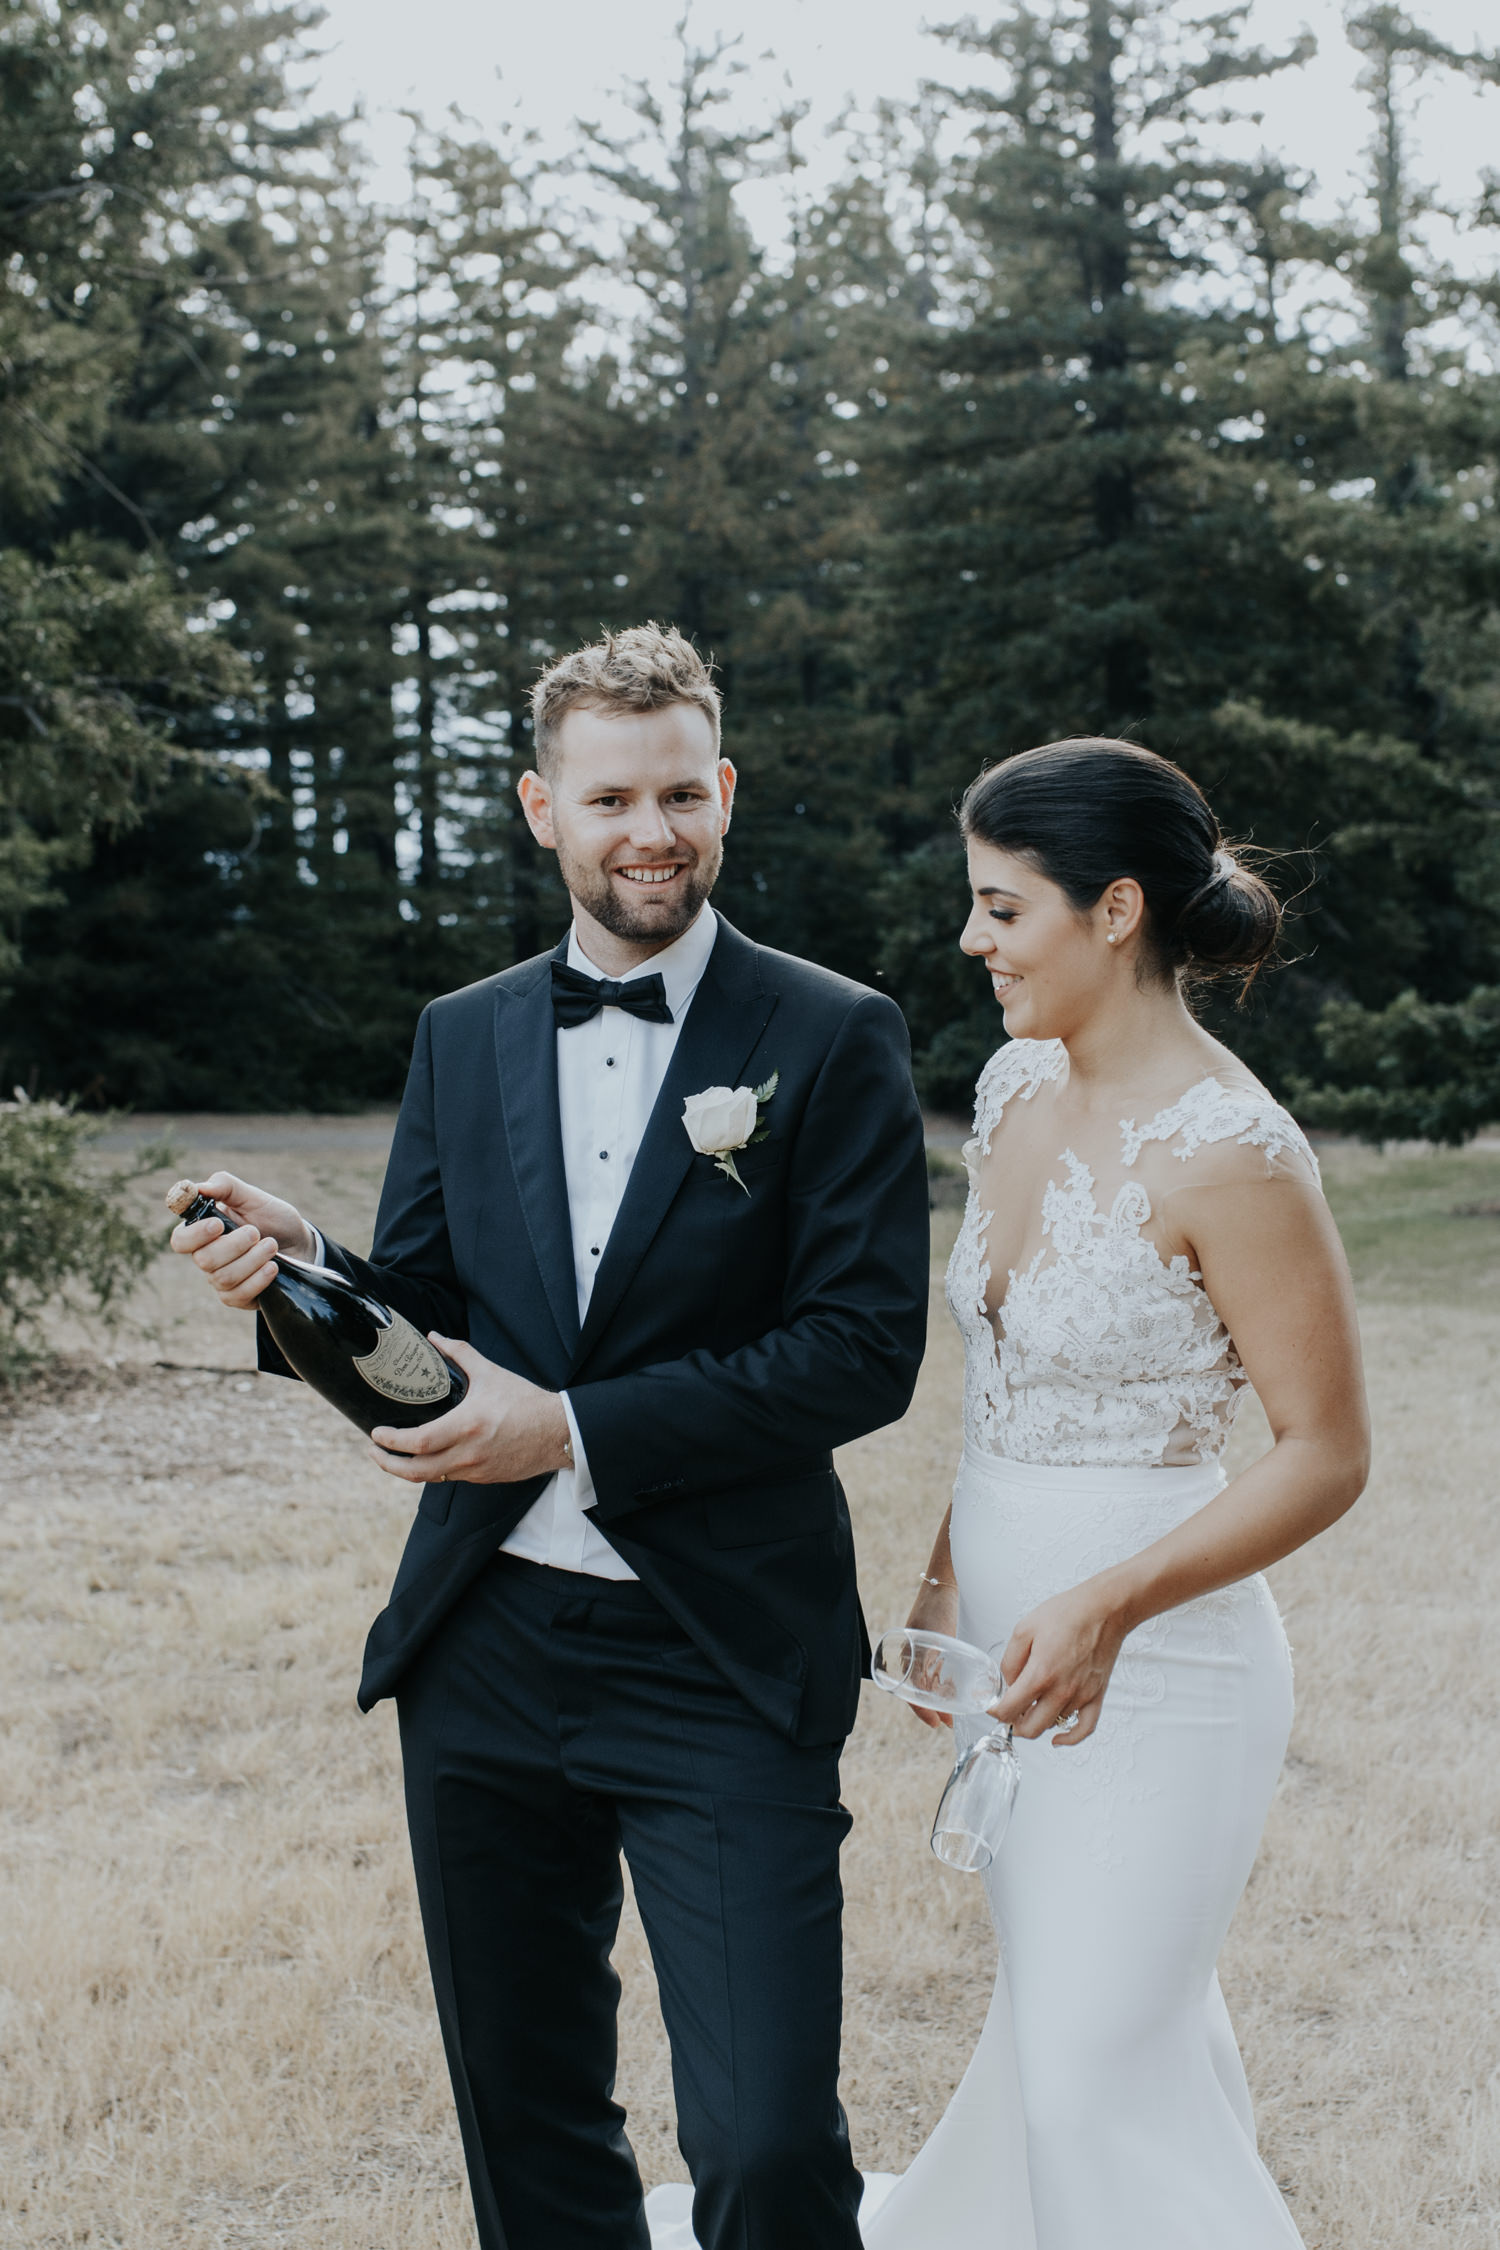 Fitters' Workshop Wedding Canberra - Piallago Forest Portraits by Jenny Wu Straight No Chaser Photography